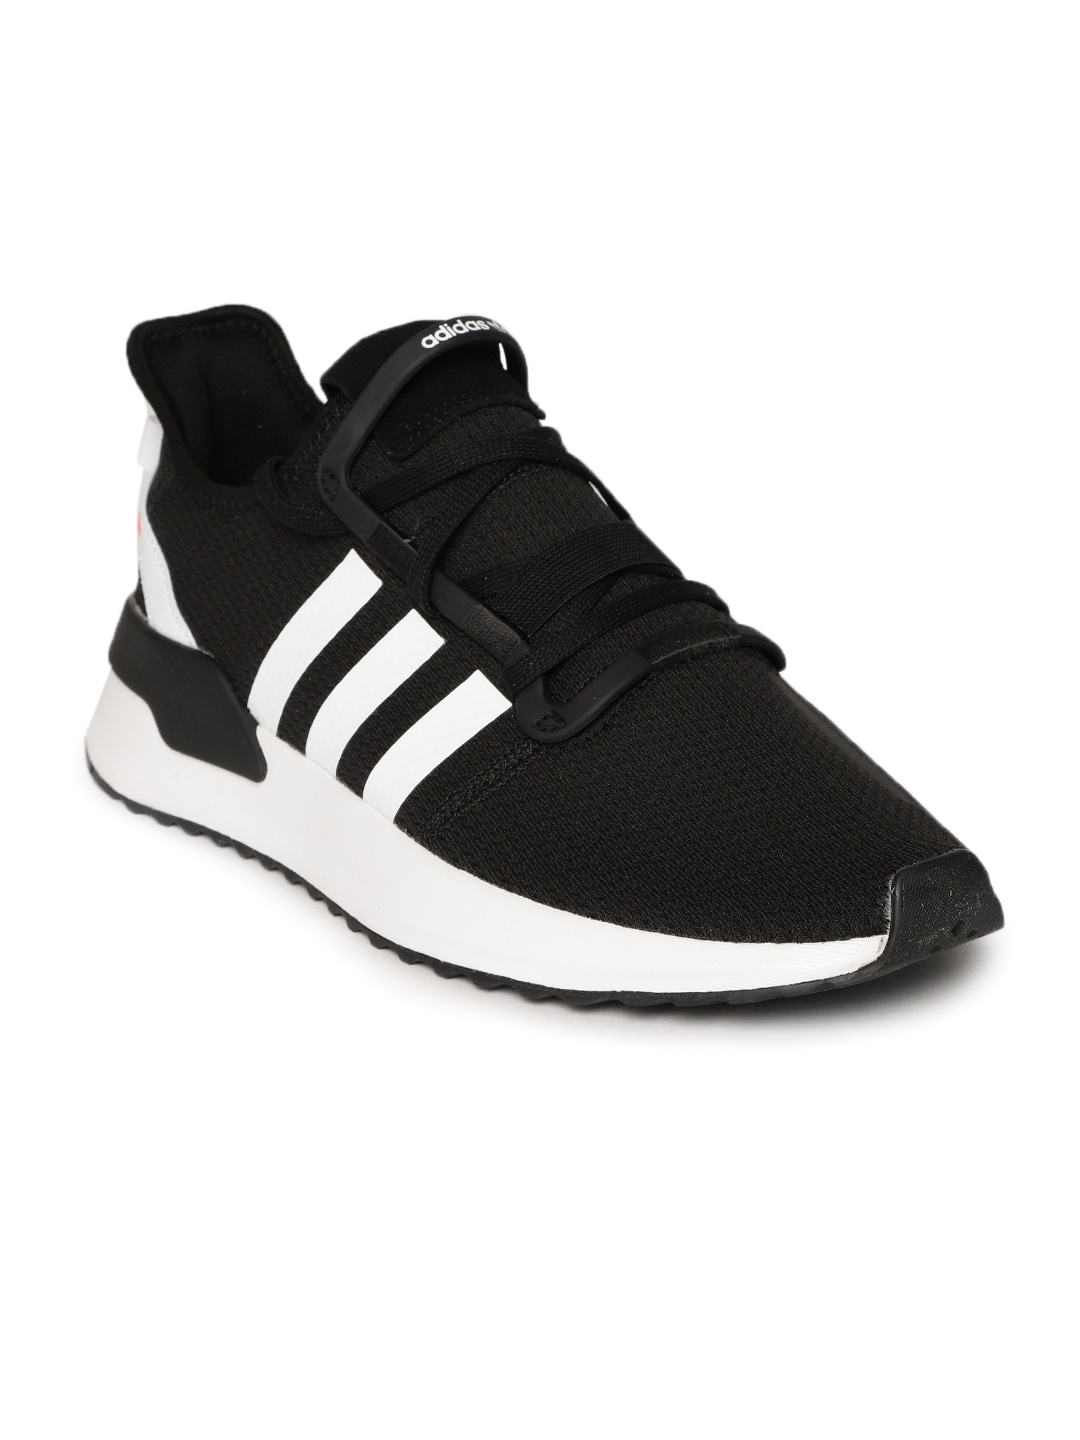 1469b00ddee Adidas Shoes - Buy Adidas Shoes for Men   Women Online - Myntra